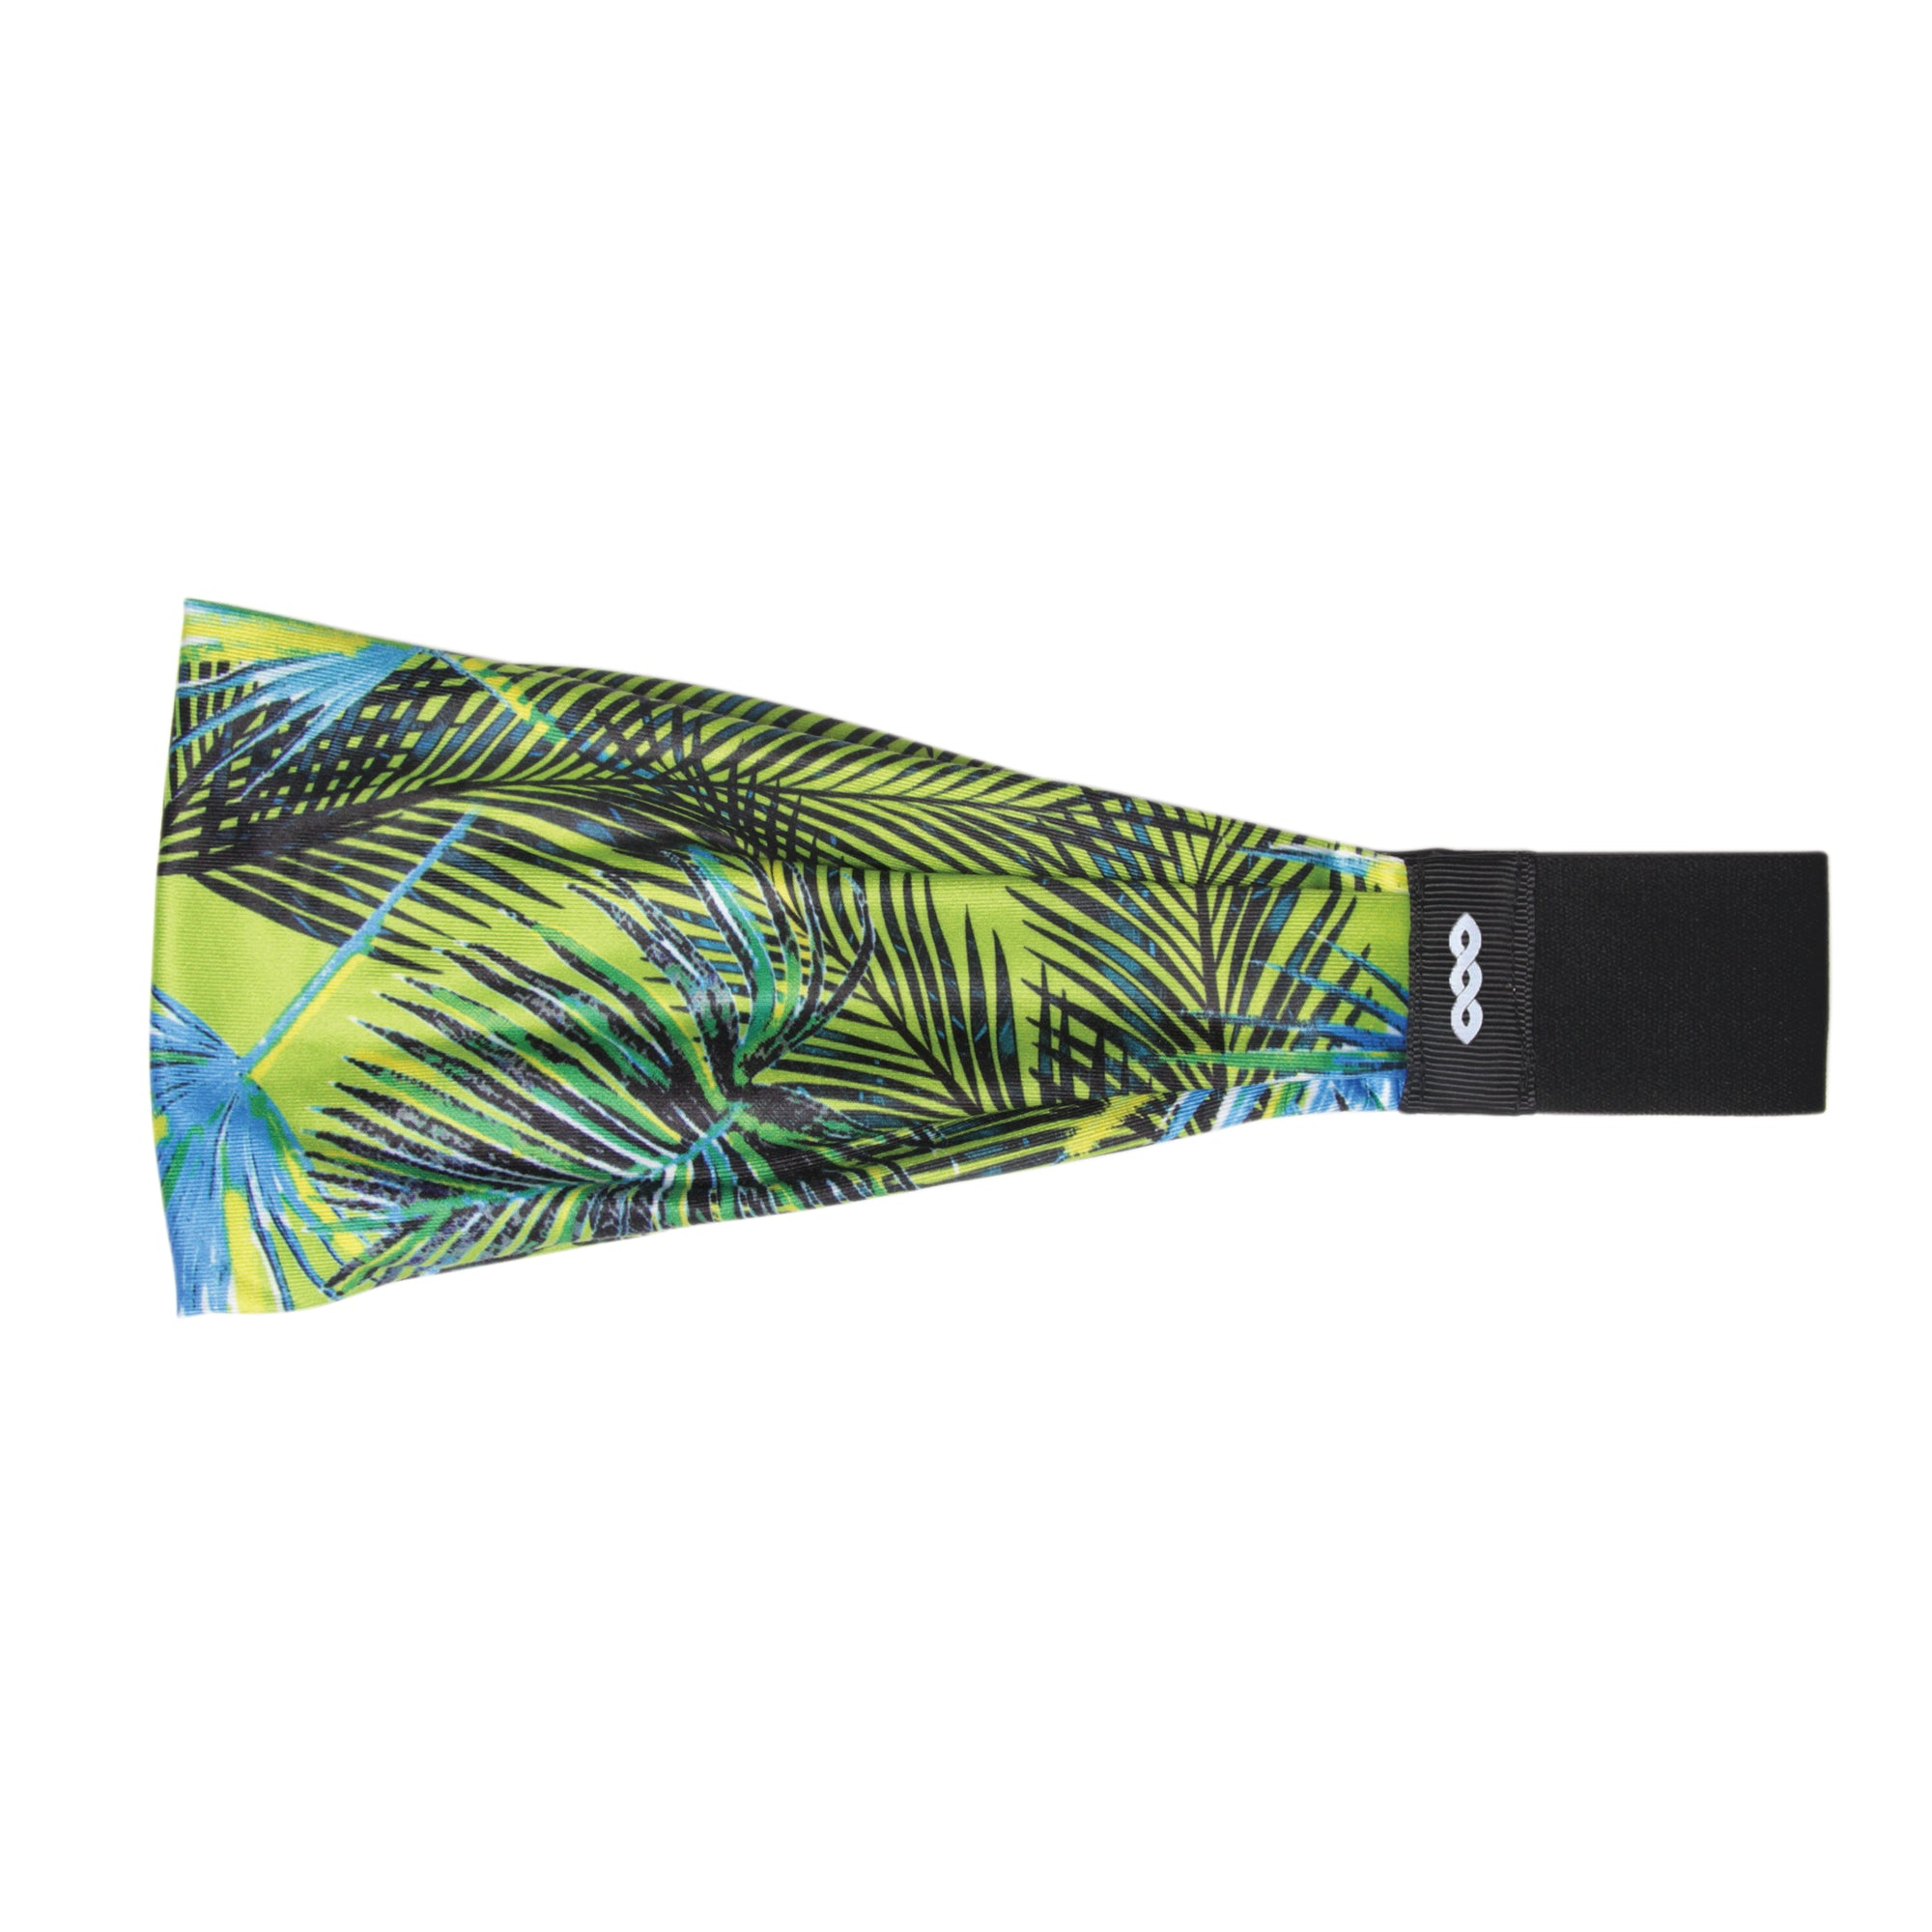 BANDED Women's Premium Headbands + Hair Accessories - Amalfi Palm - Accelerate Athletic Headband